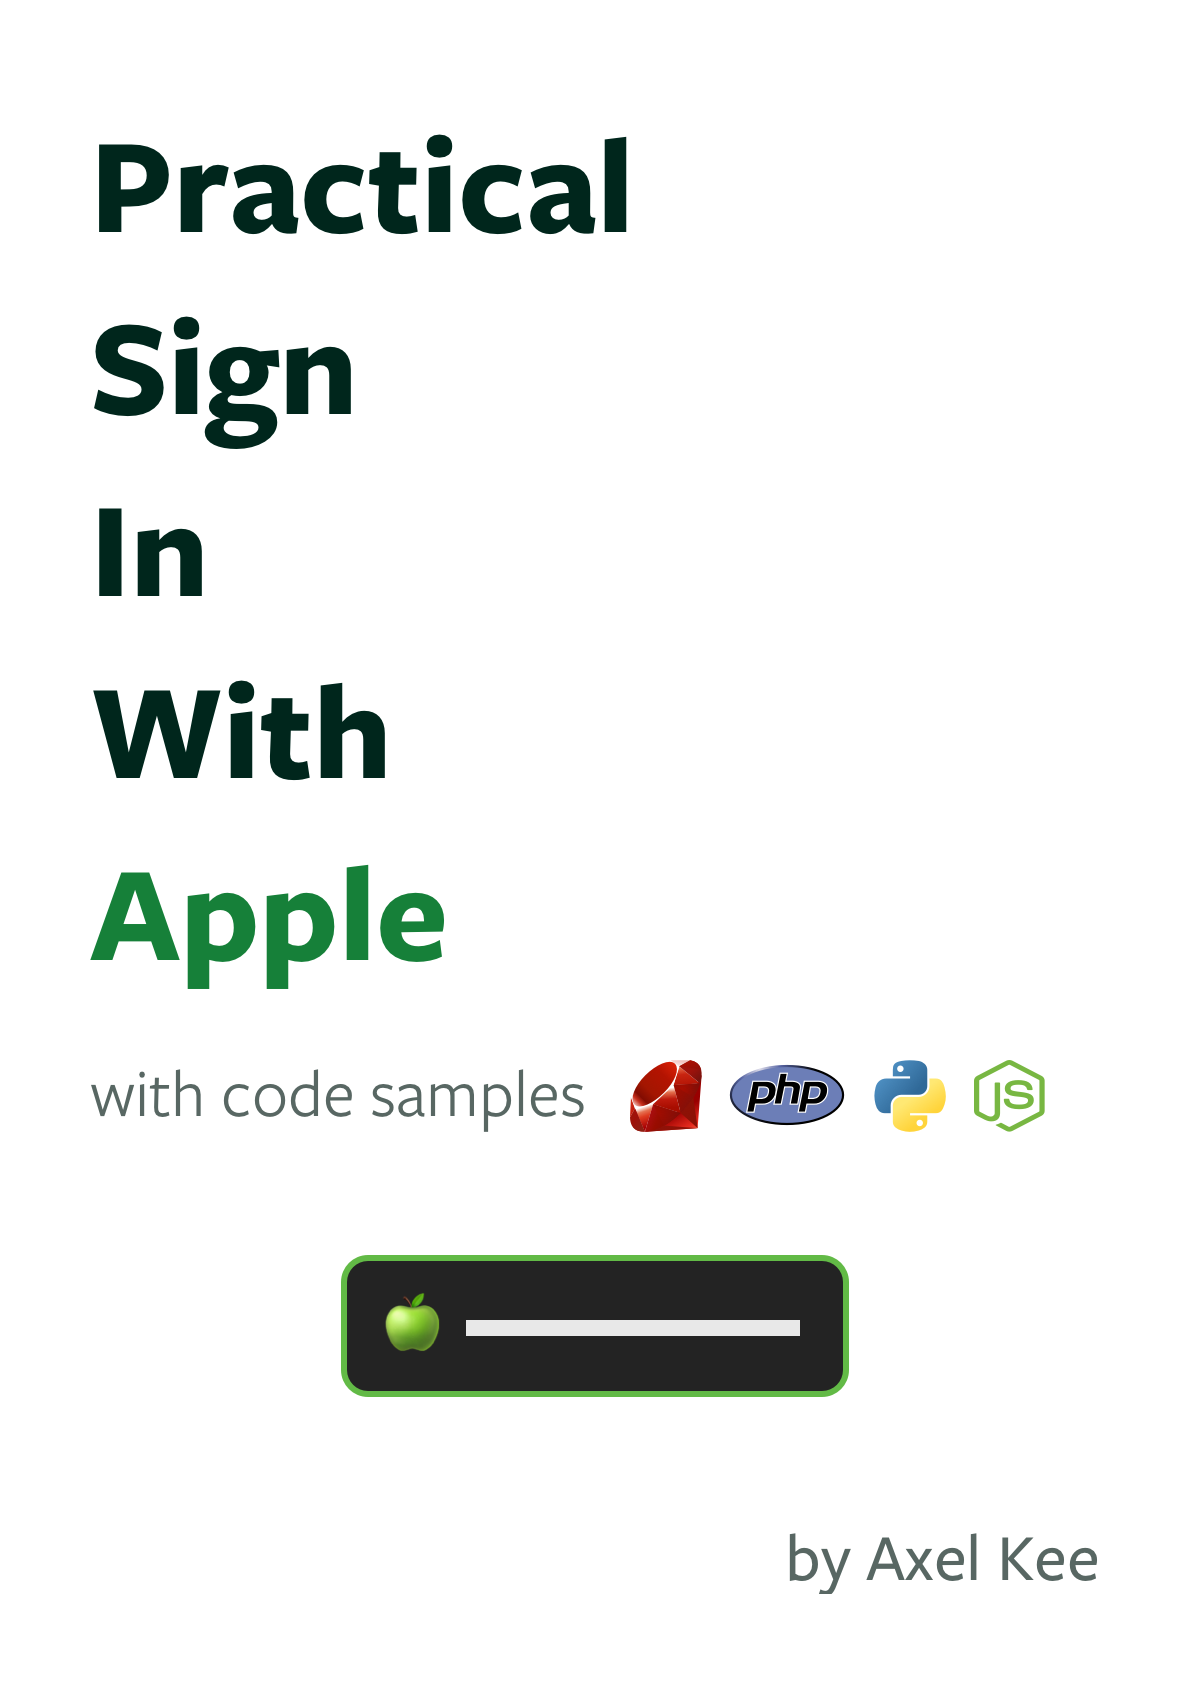 Practical Sign in With Apple - axel kee